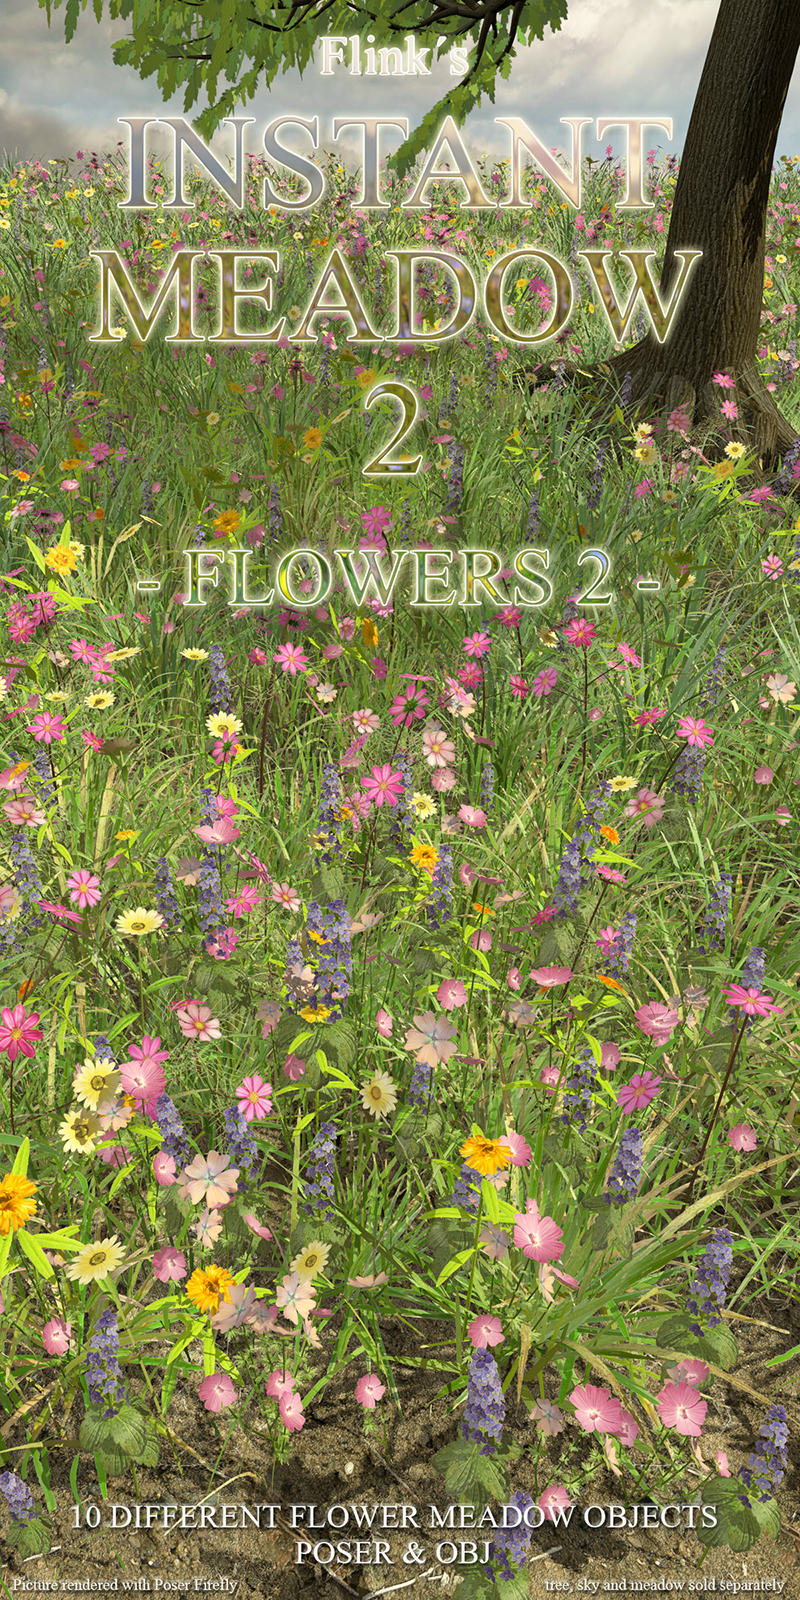 Flinks Instant Meadow 2 - Flowers 2